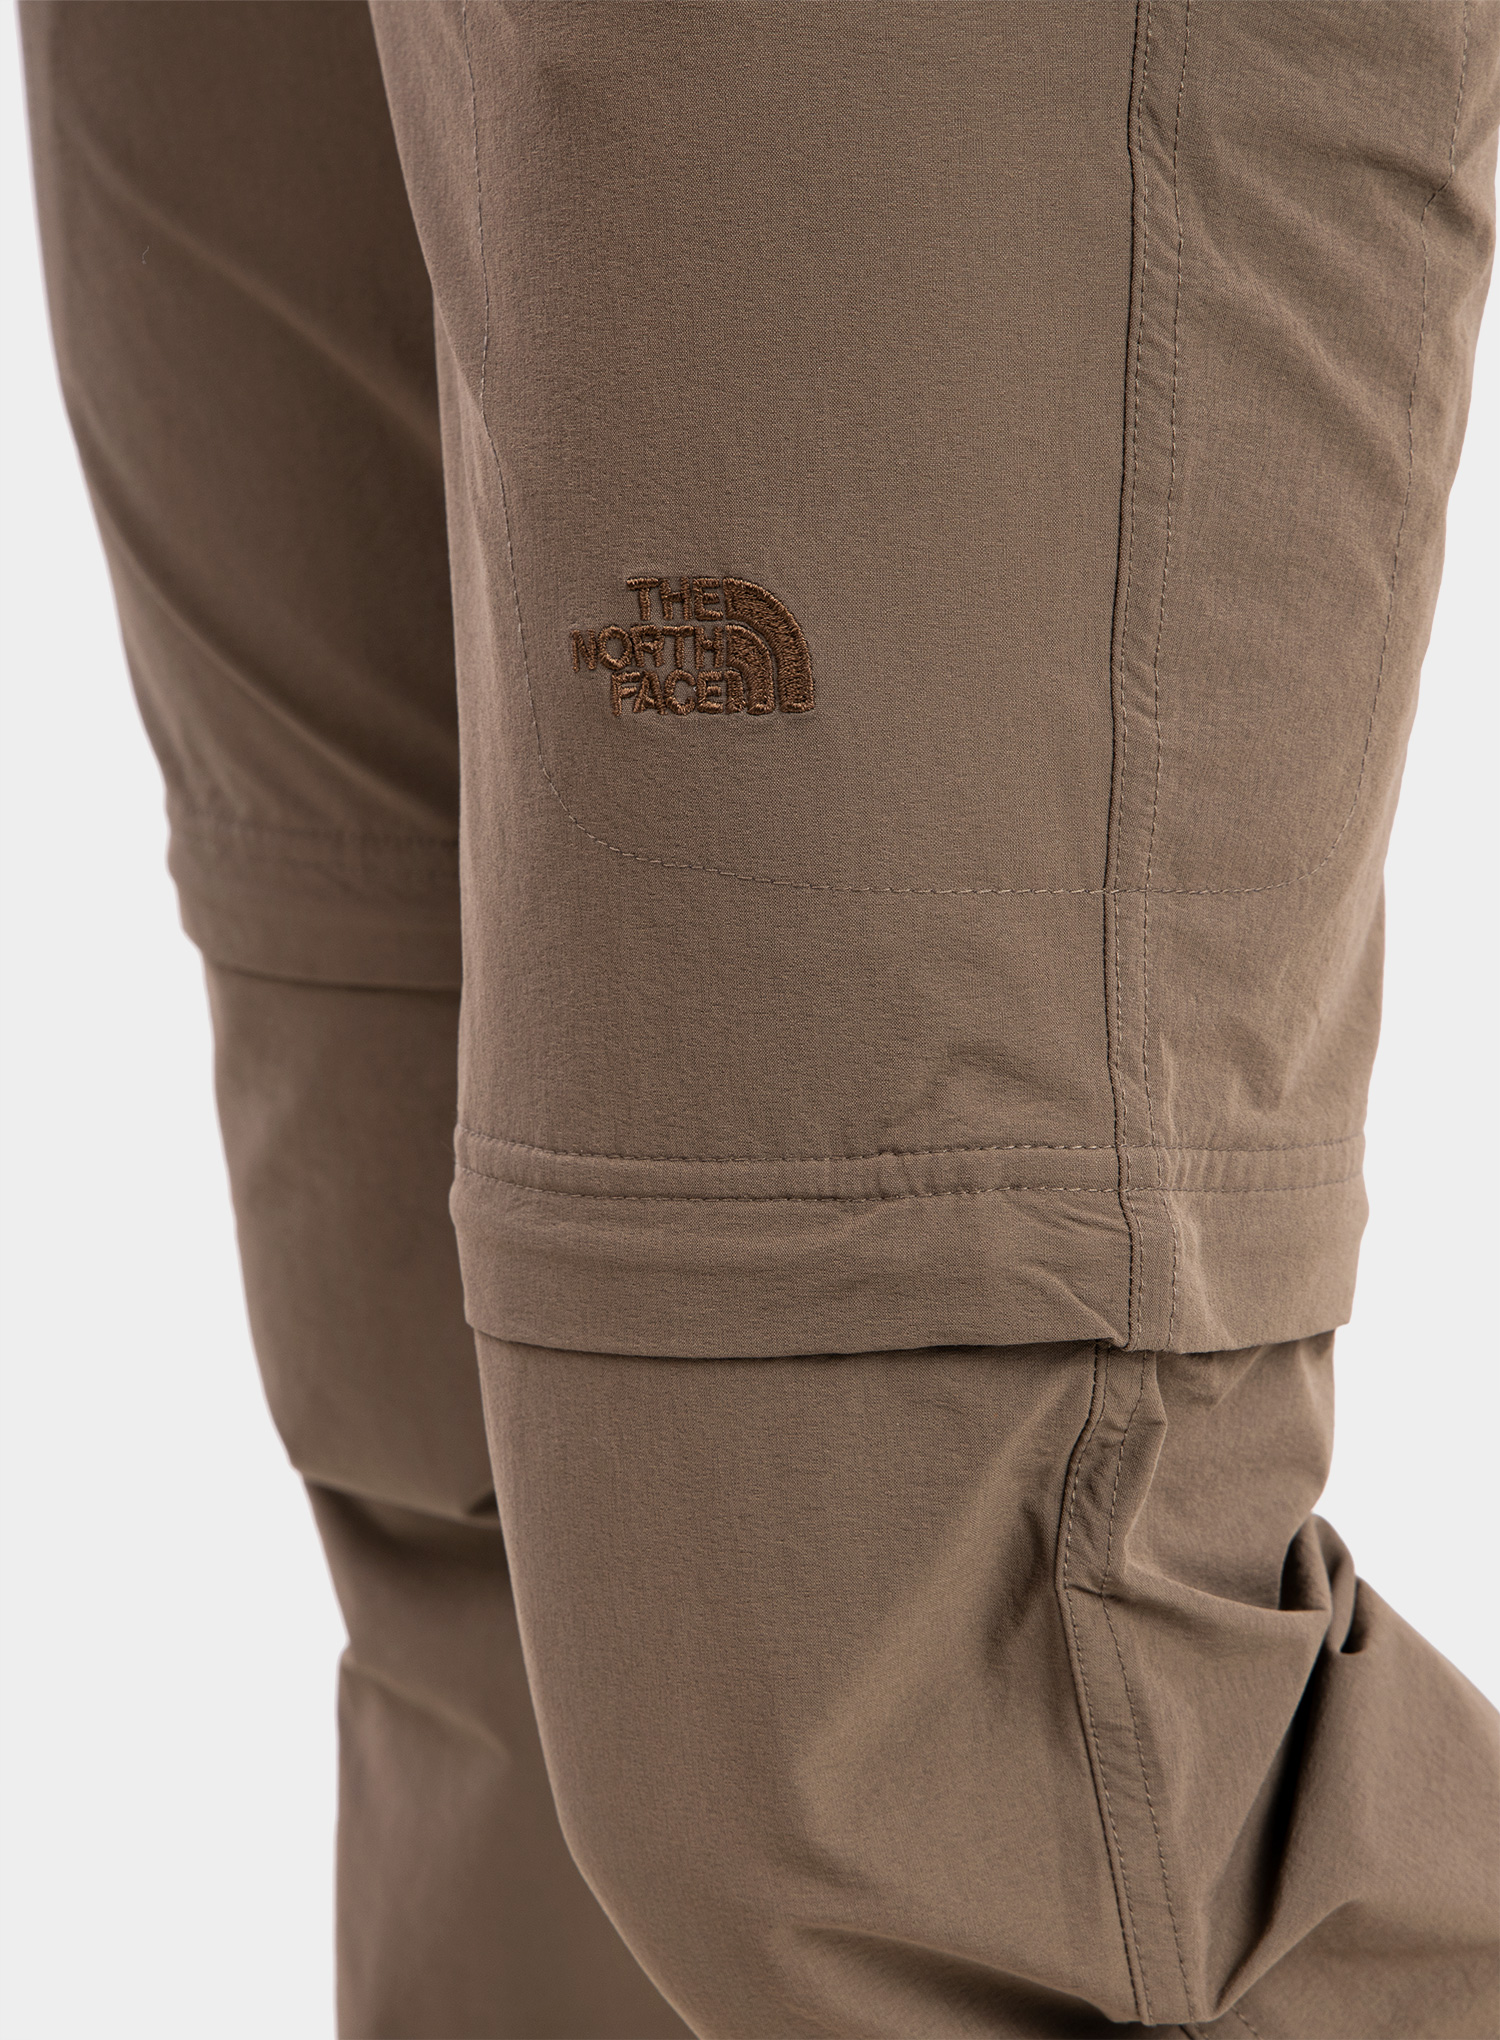 The North Face Exploration Convertible Pant - weimaraner brown - zdjęcie nr. 7